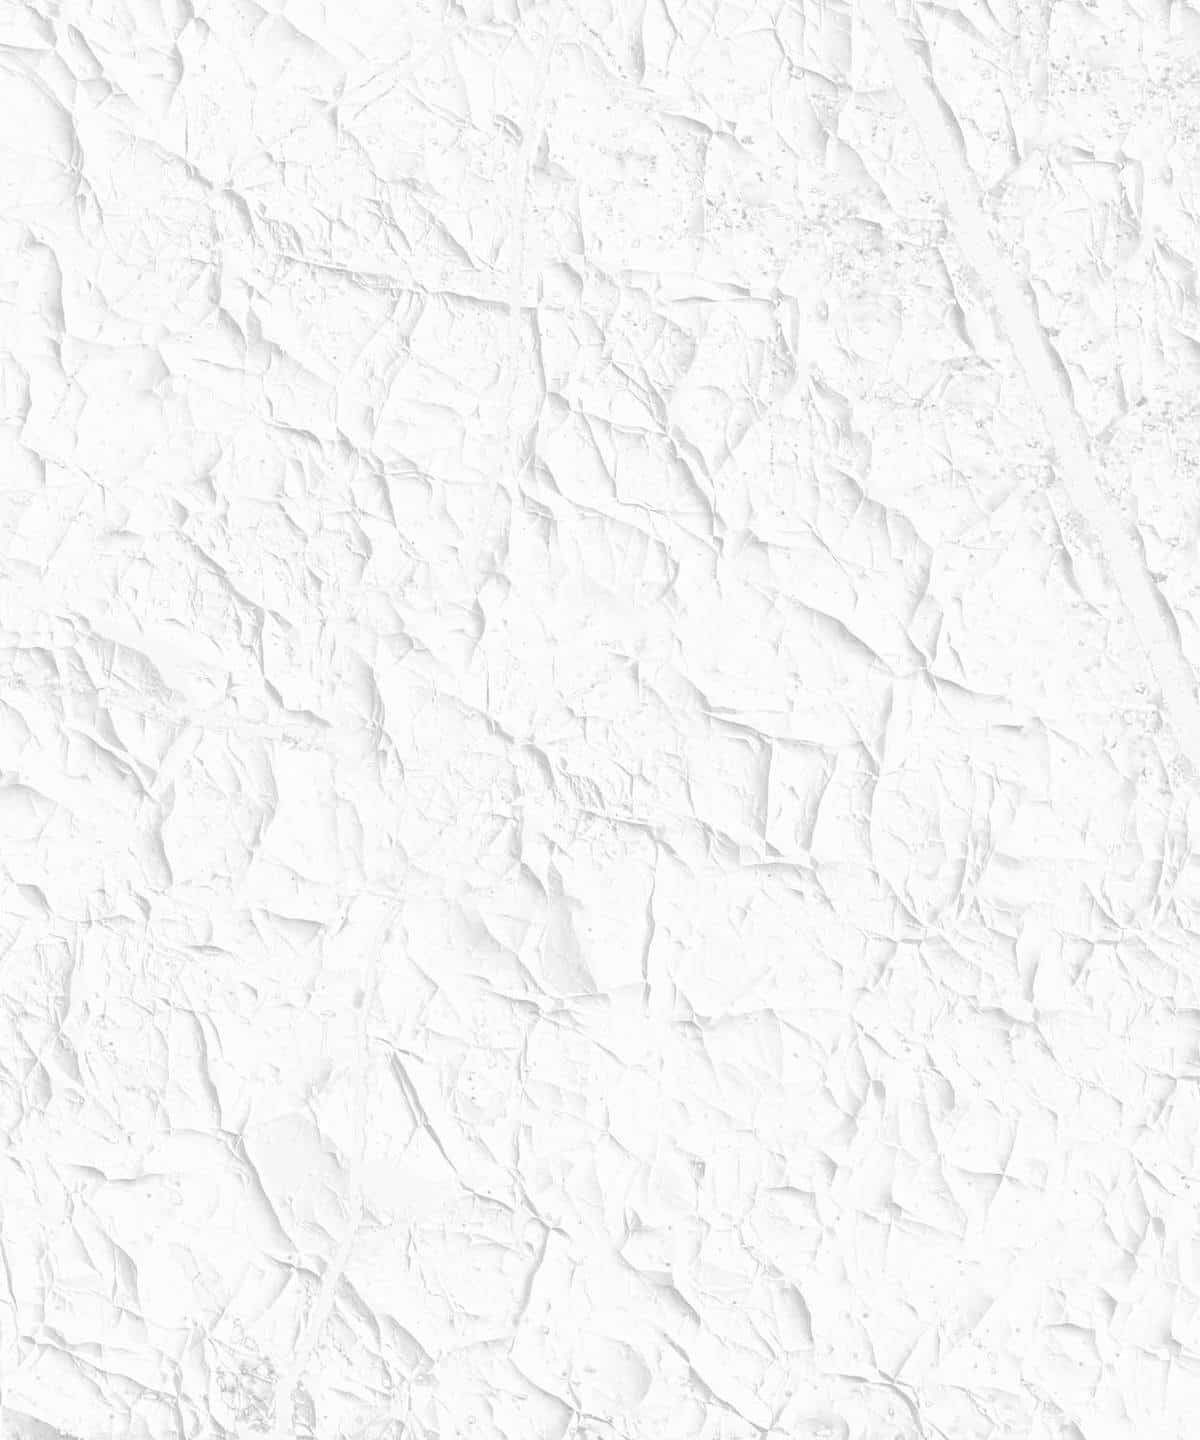 A close up of a white painted stucco wall texture with ridges for use as a background or design element